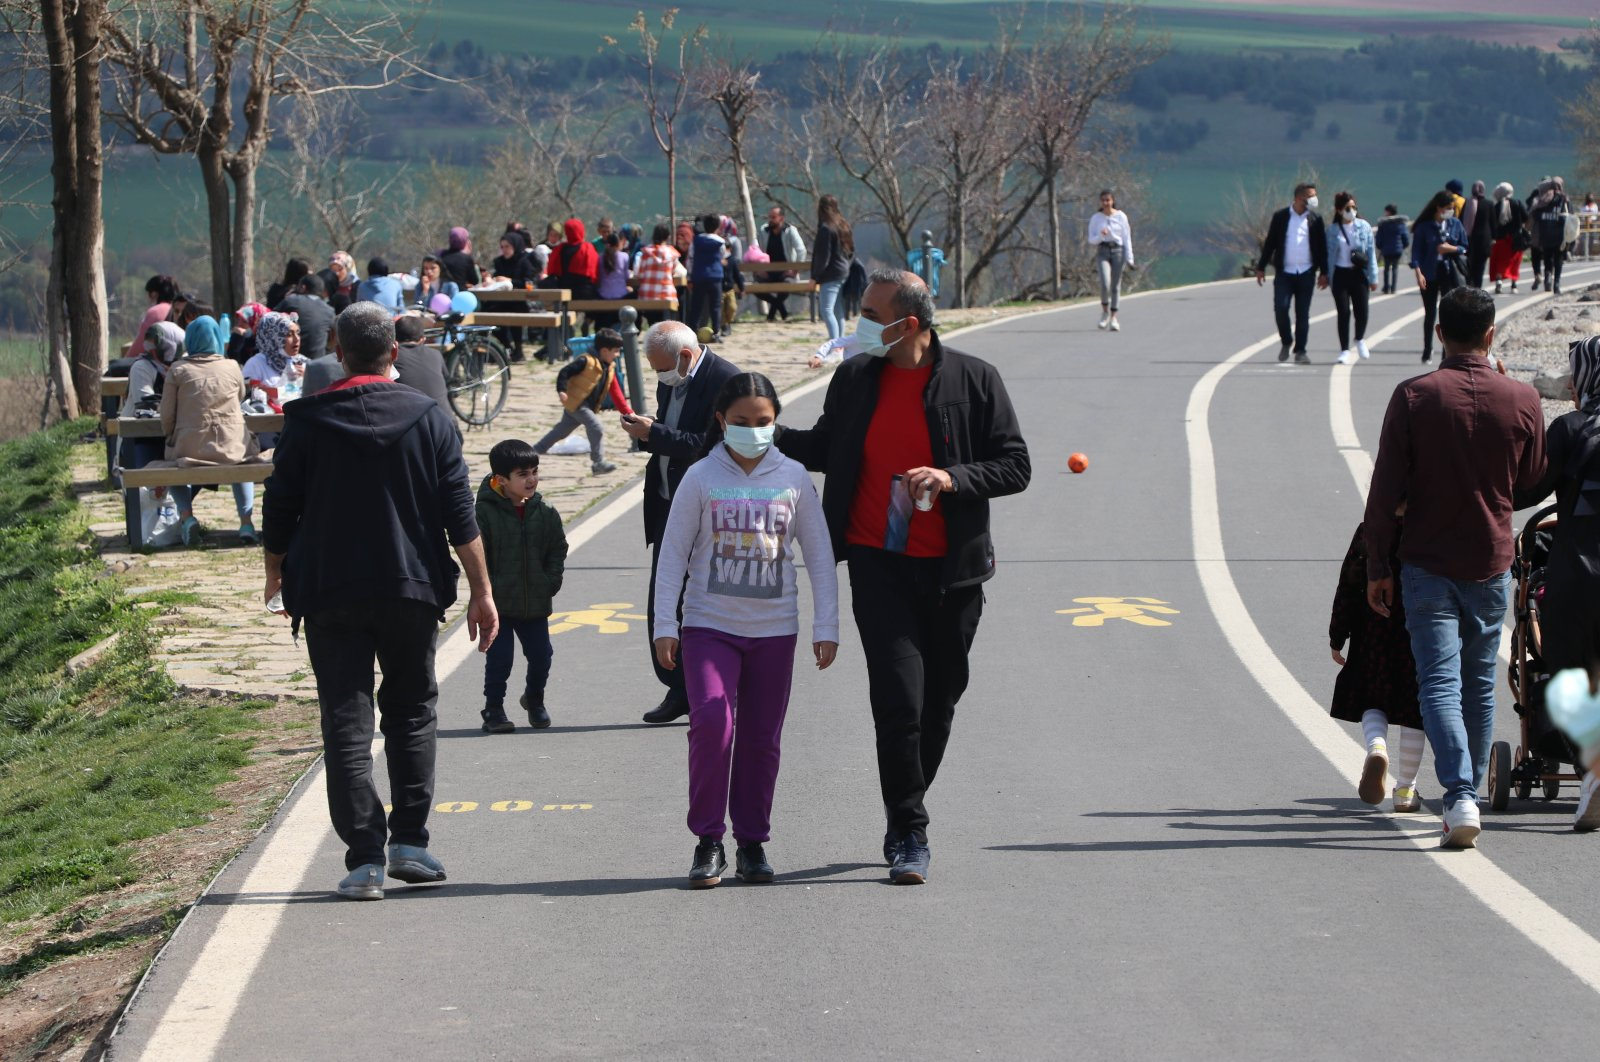 People wearing protective masks walk in a park in Diyarbakır, southeastern Turkey, April 8, 2021. (DHA PHOTO)